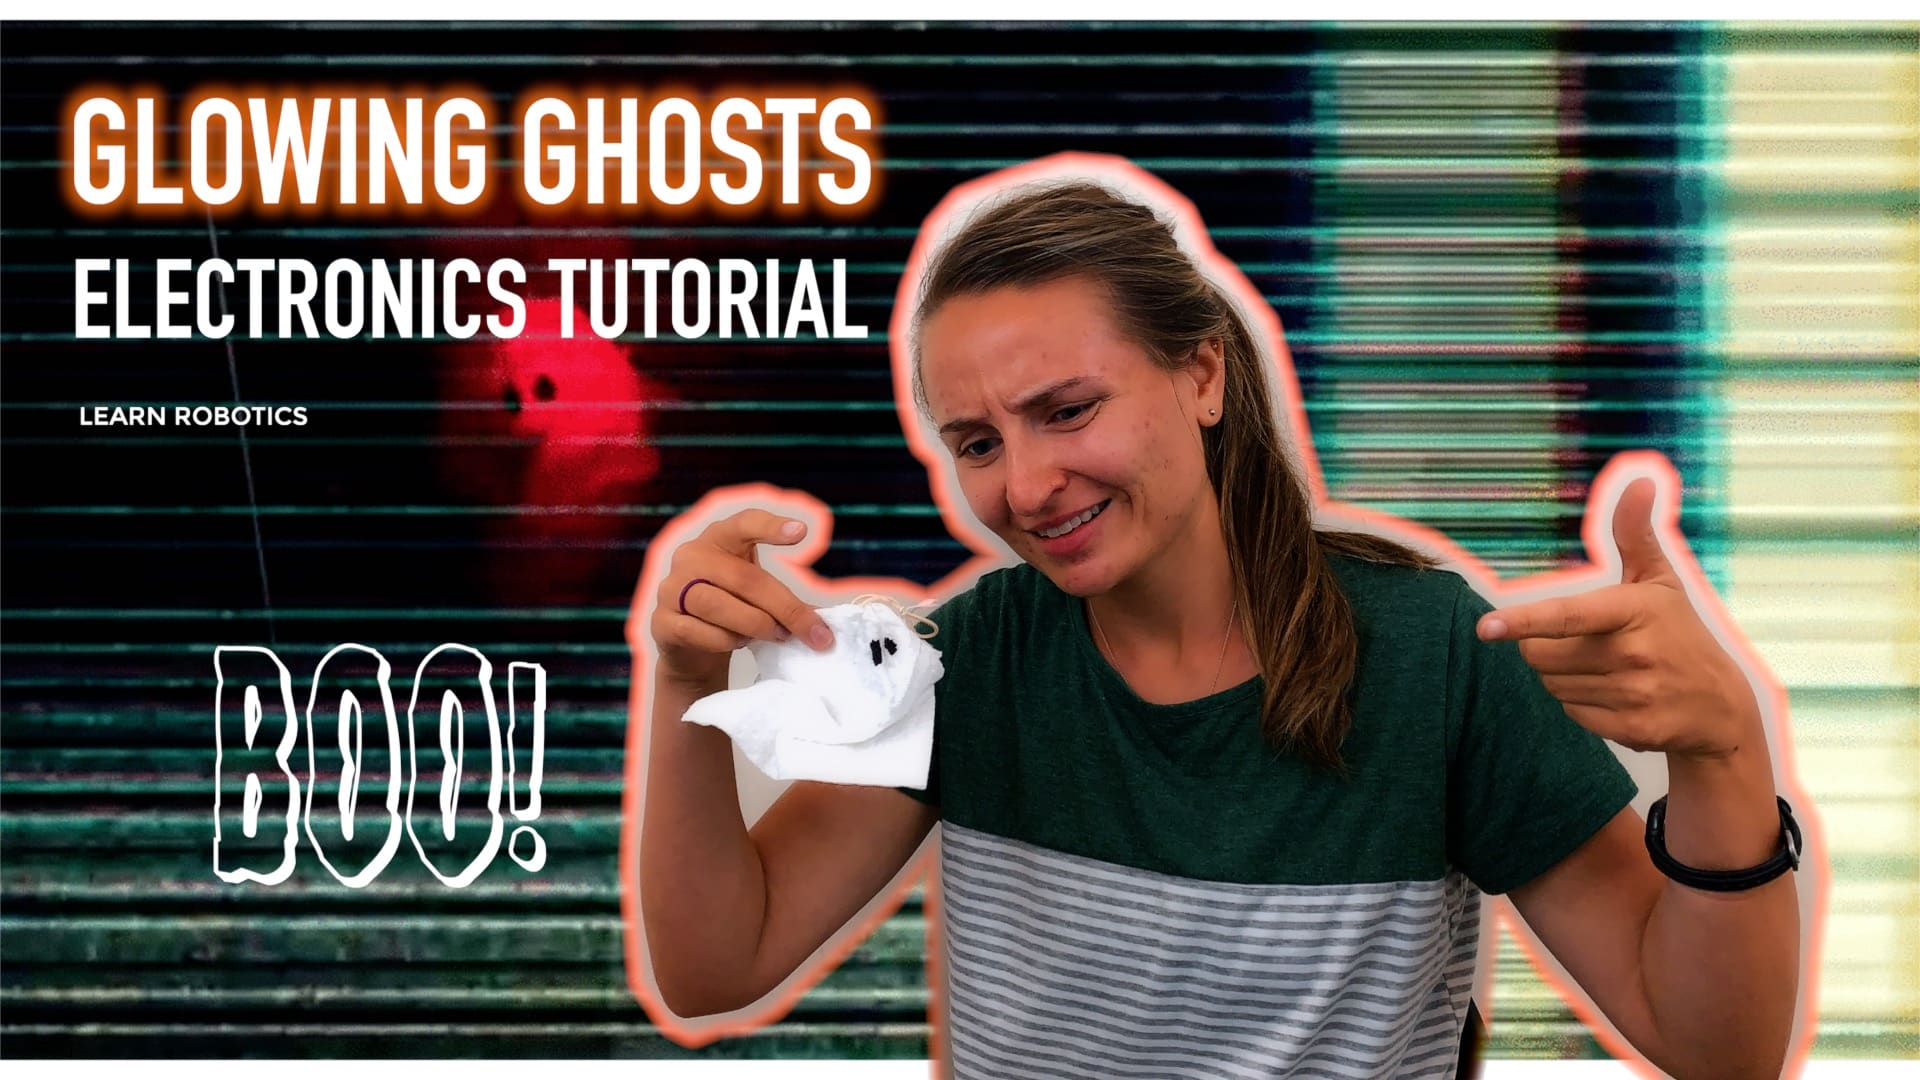 glowing ghosts project using circuits STEM education electronics halloween diy